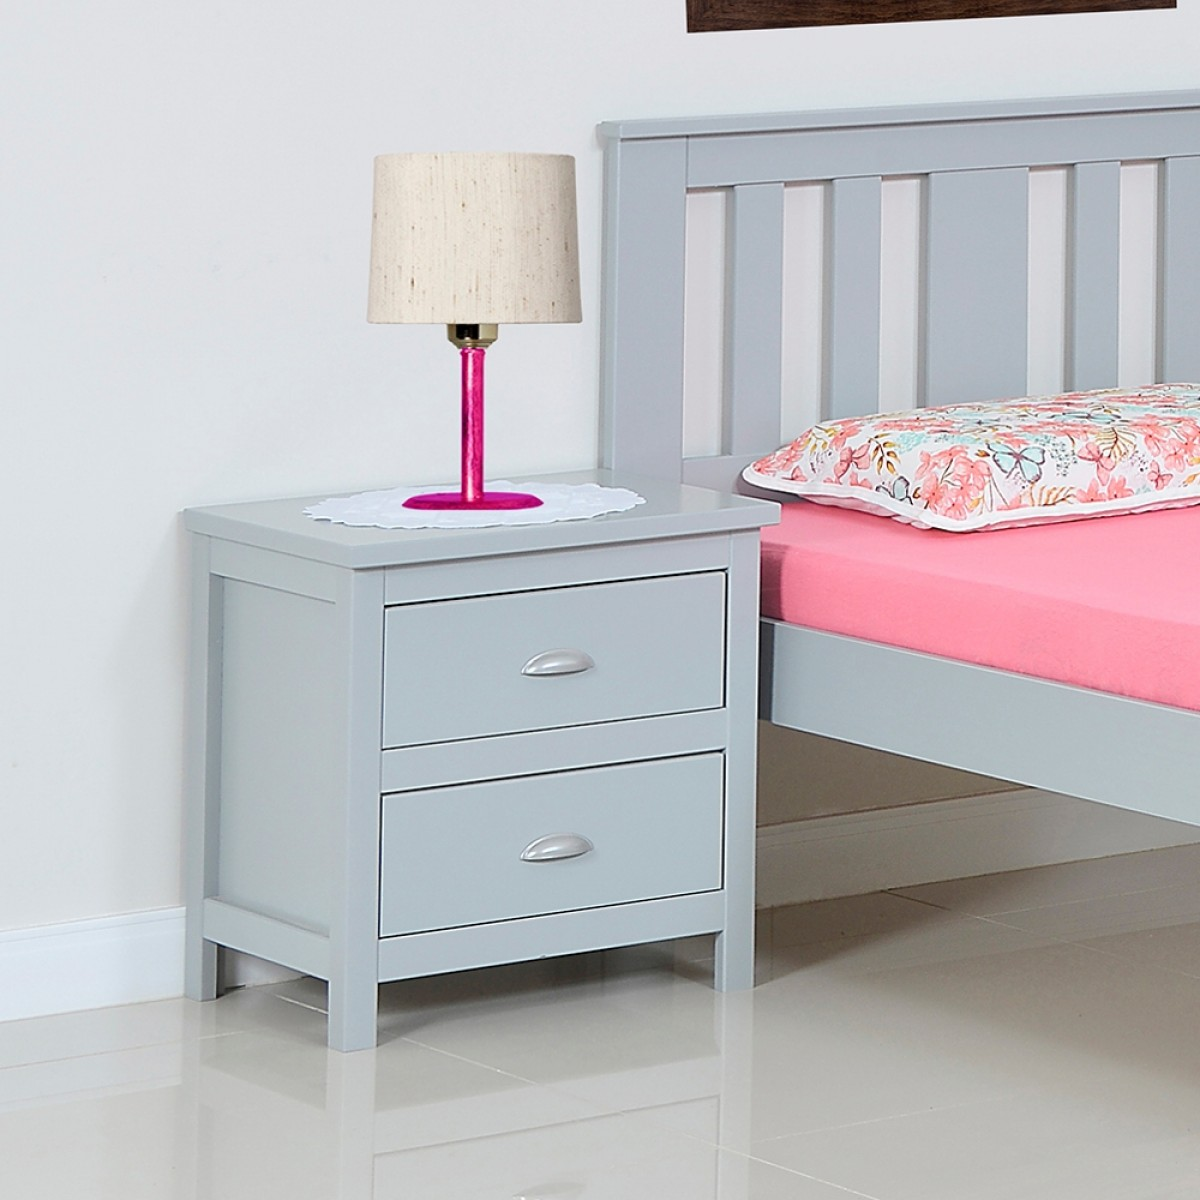 Kingston Grey Wooden 2 Drawer Bedside Table